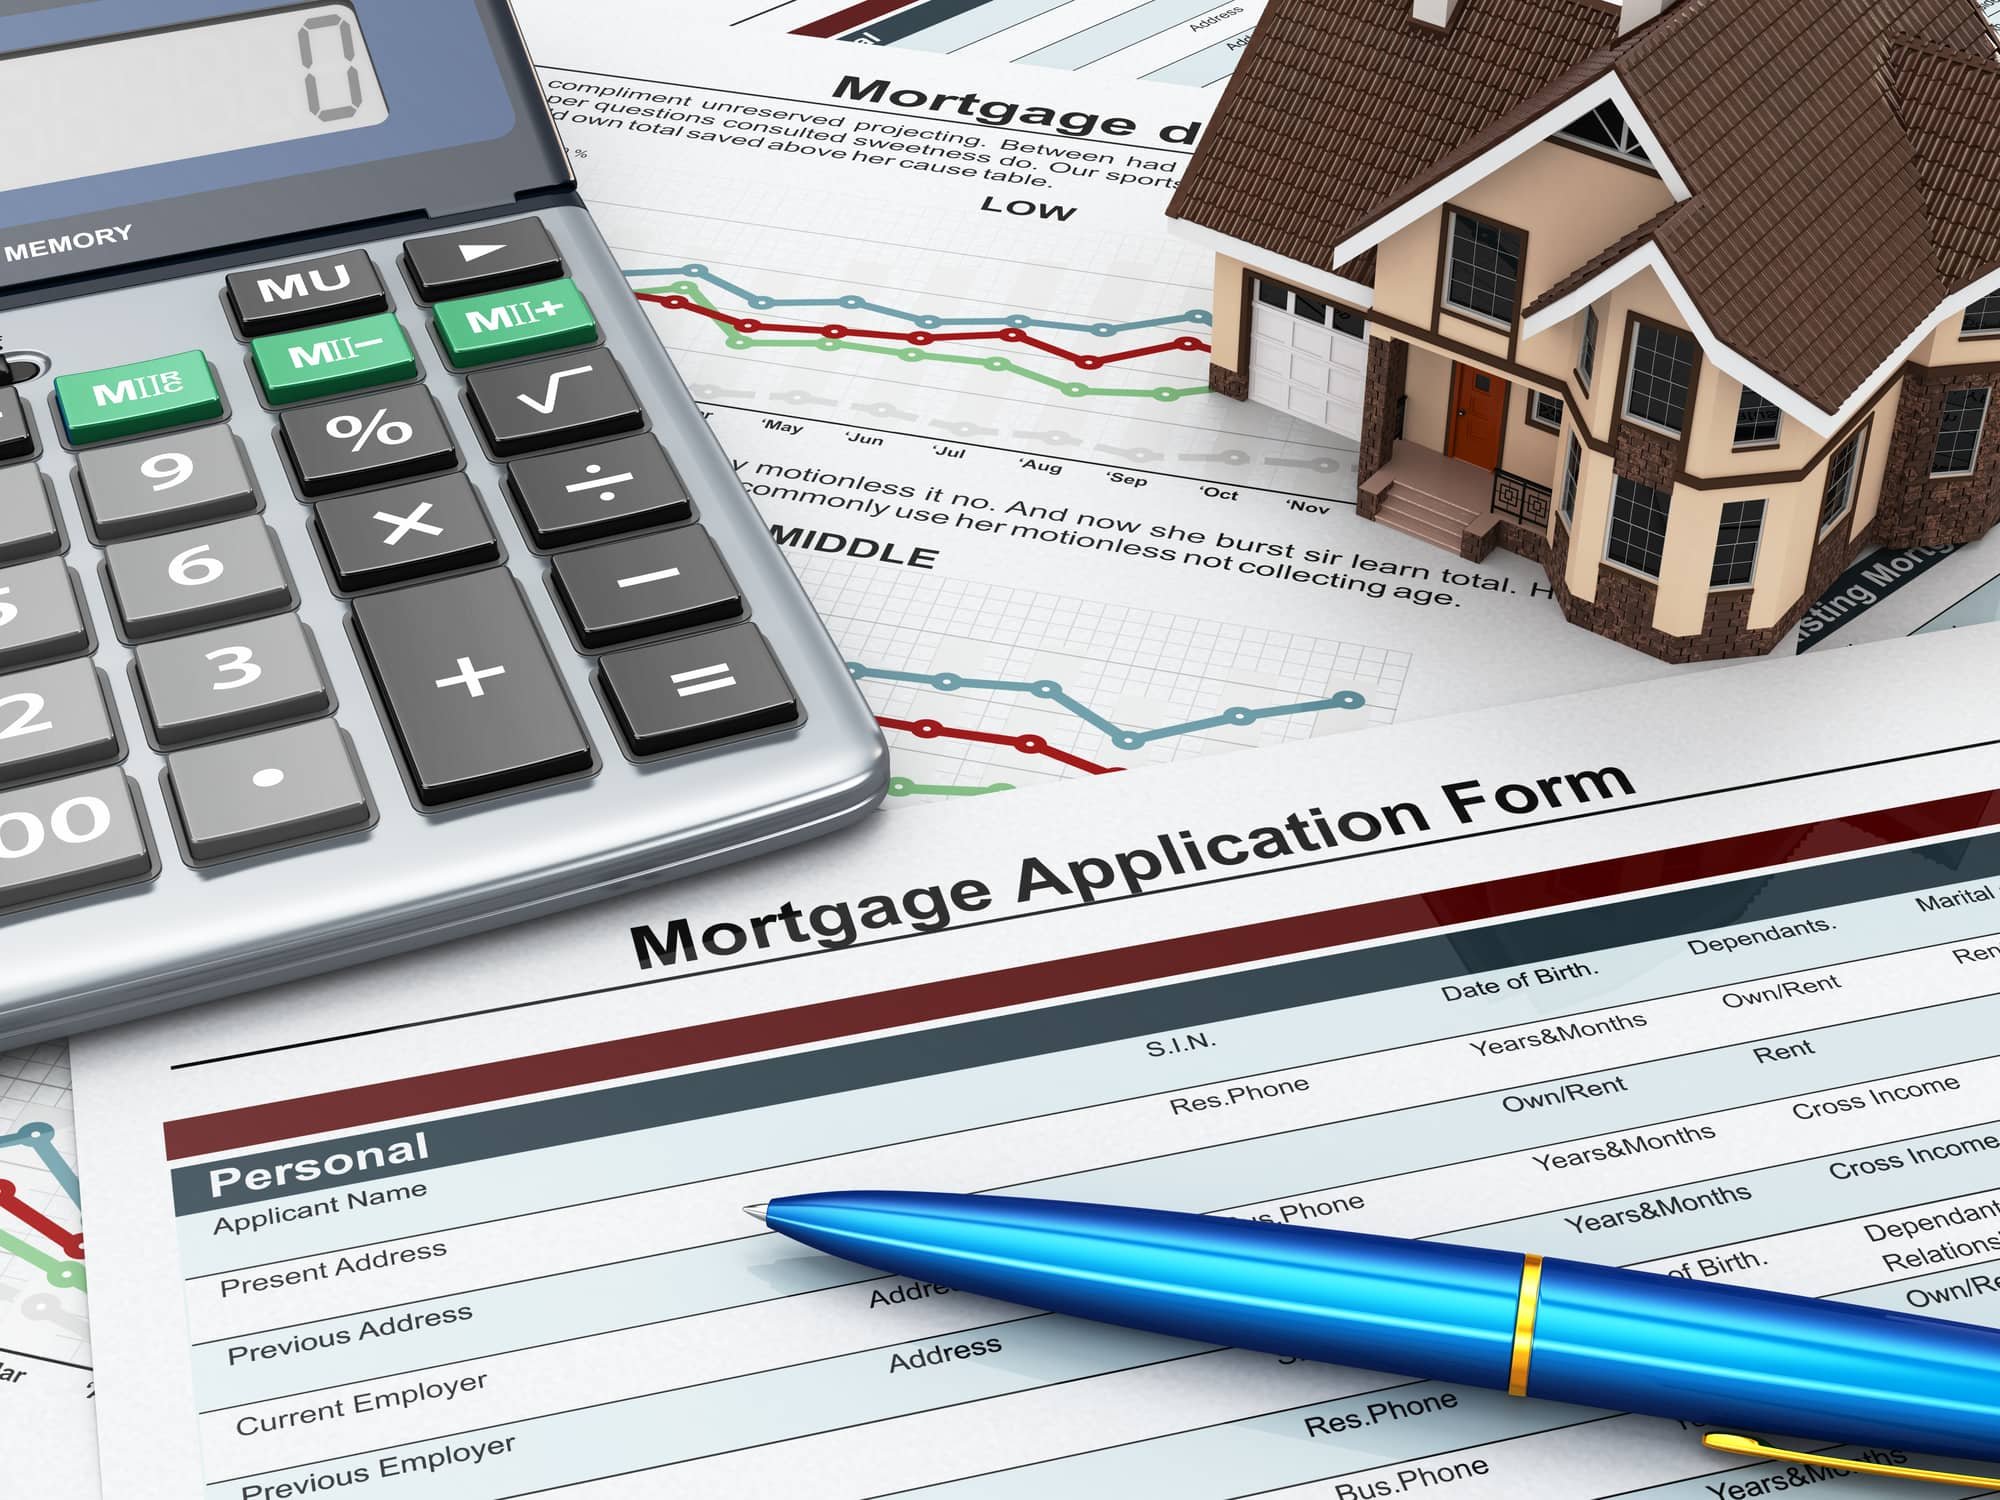 Refinance Home Loan Frequently Asked Questions